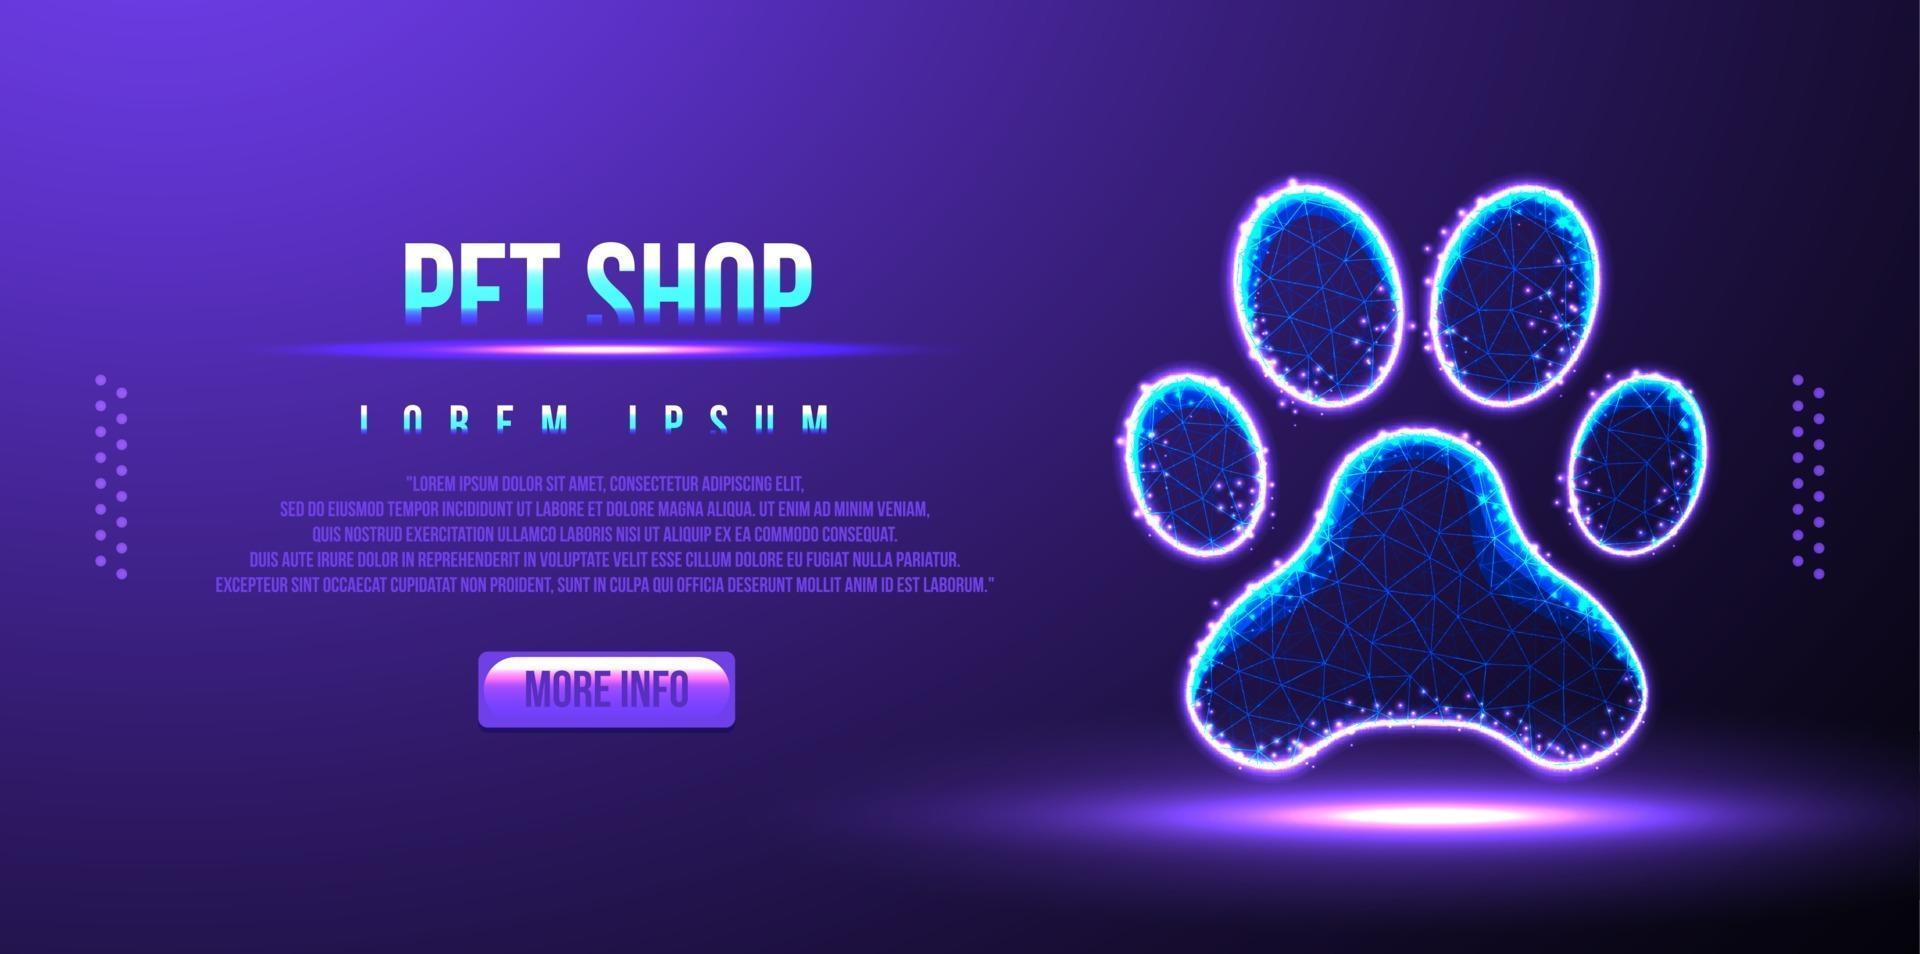 pet shop, paw, abstract low poly wireframe, vector illustration